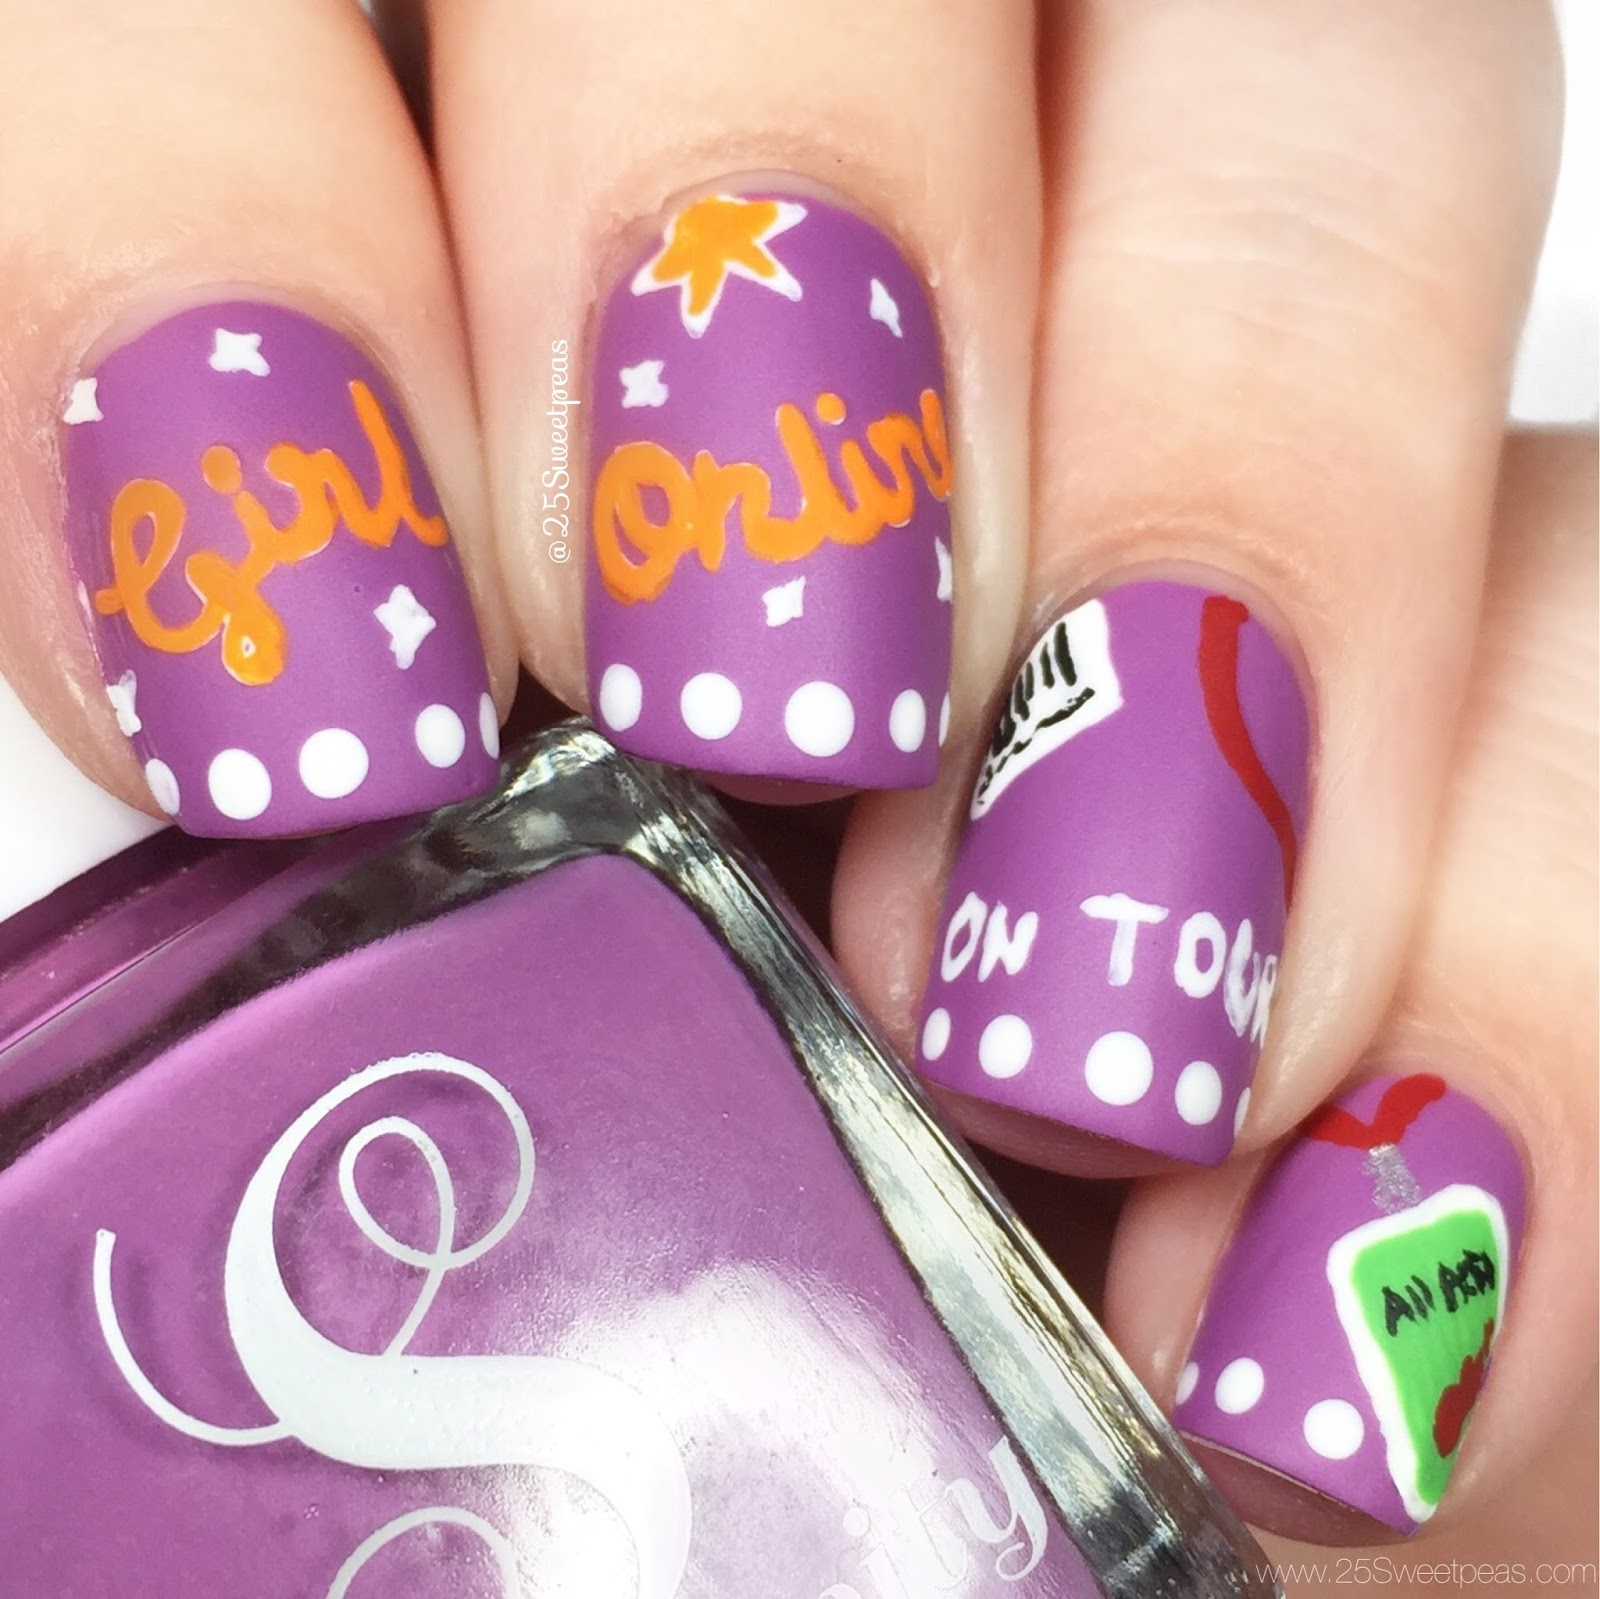 Girl Online Nails